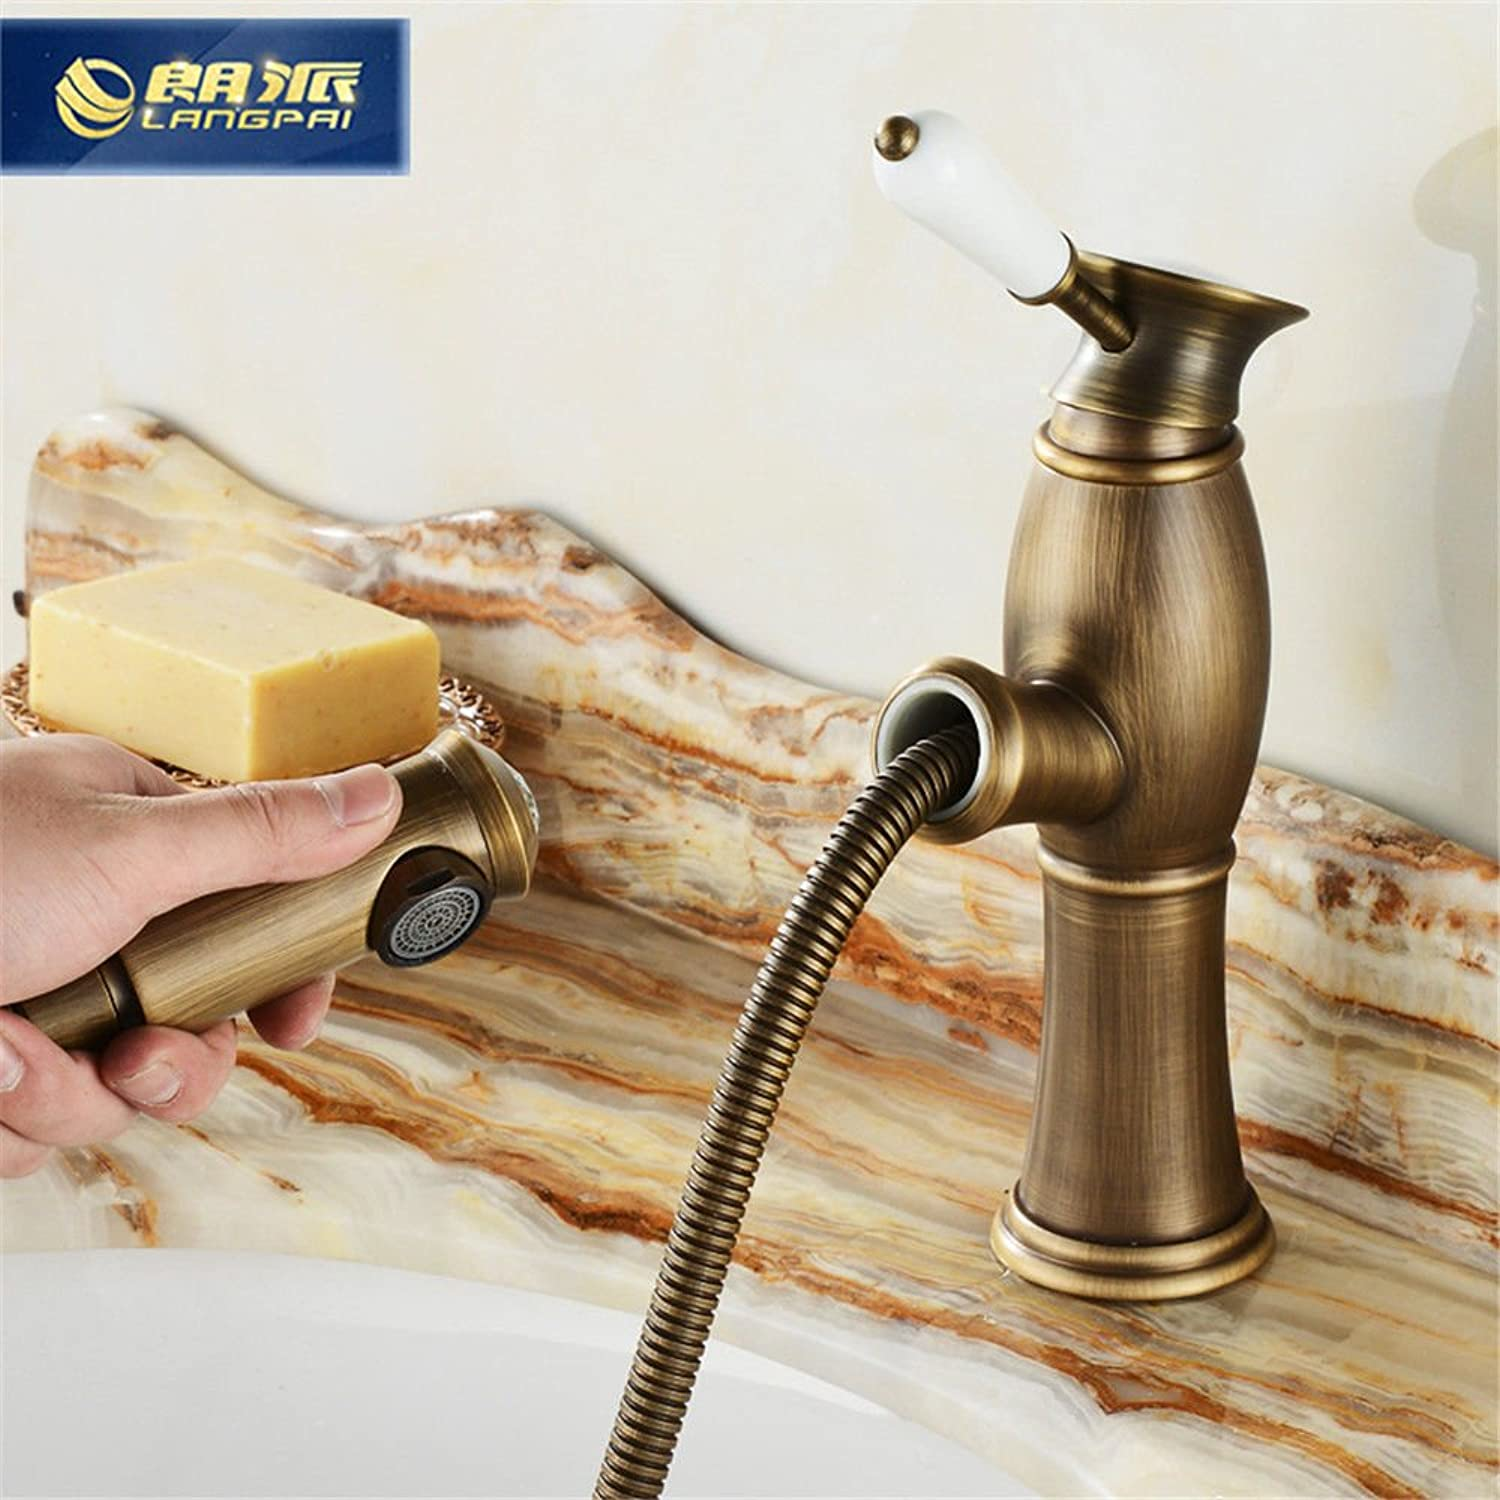 Lalaky Taps Faucet Kitchen Mixer Sink Waterfall Bathroom Mixer Basin Mixer Tap for Kitchen Bathroom and Washroom gold Pull-Out Antique Copper Single Hole Hot and Cold